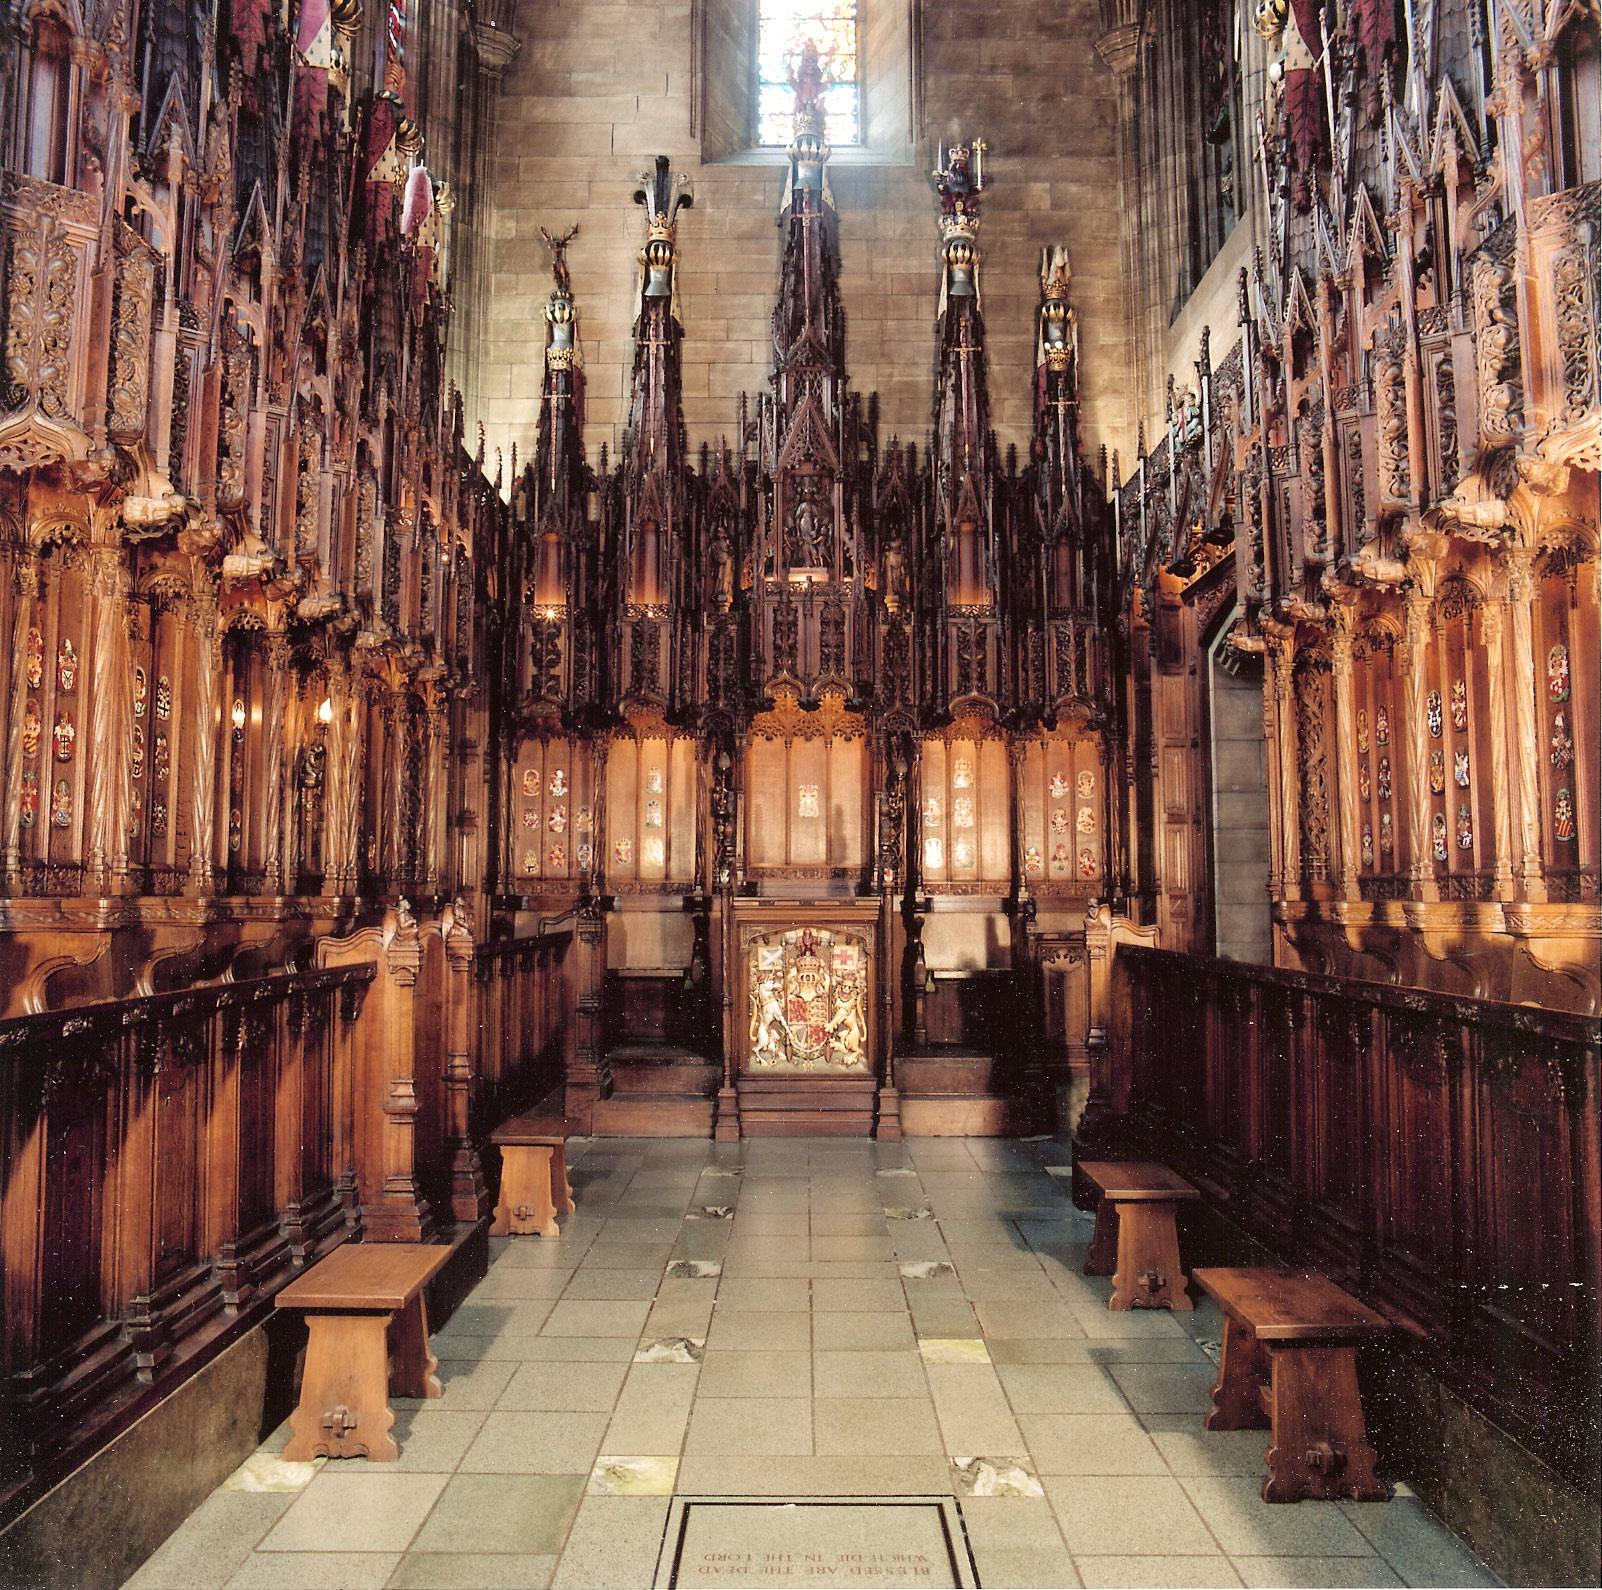 Extensive work carried out on Thistle Chapel, designed by Robert Lorimer. St Giles cathedral, Edinburgh.